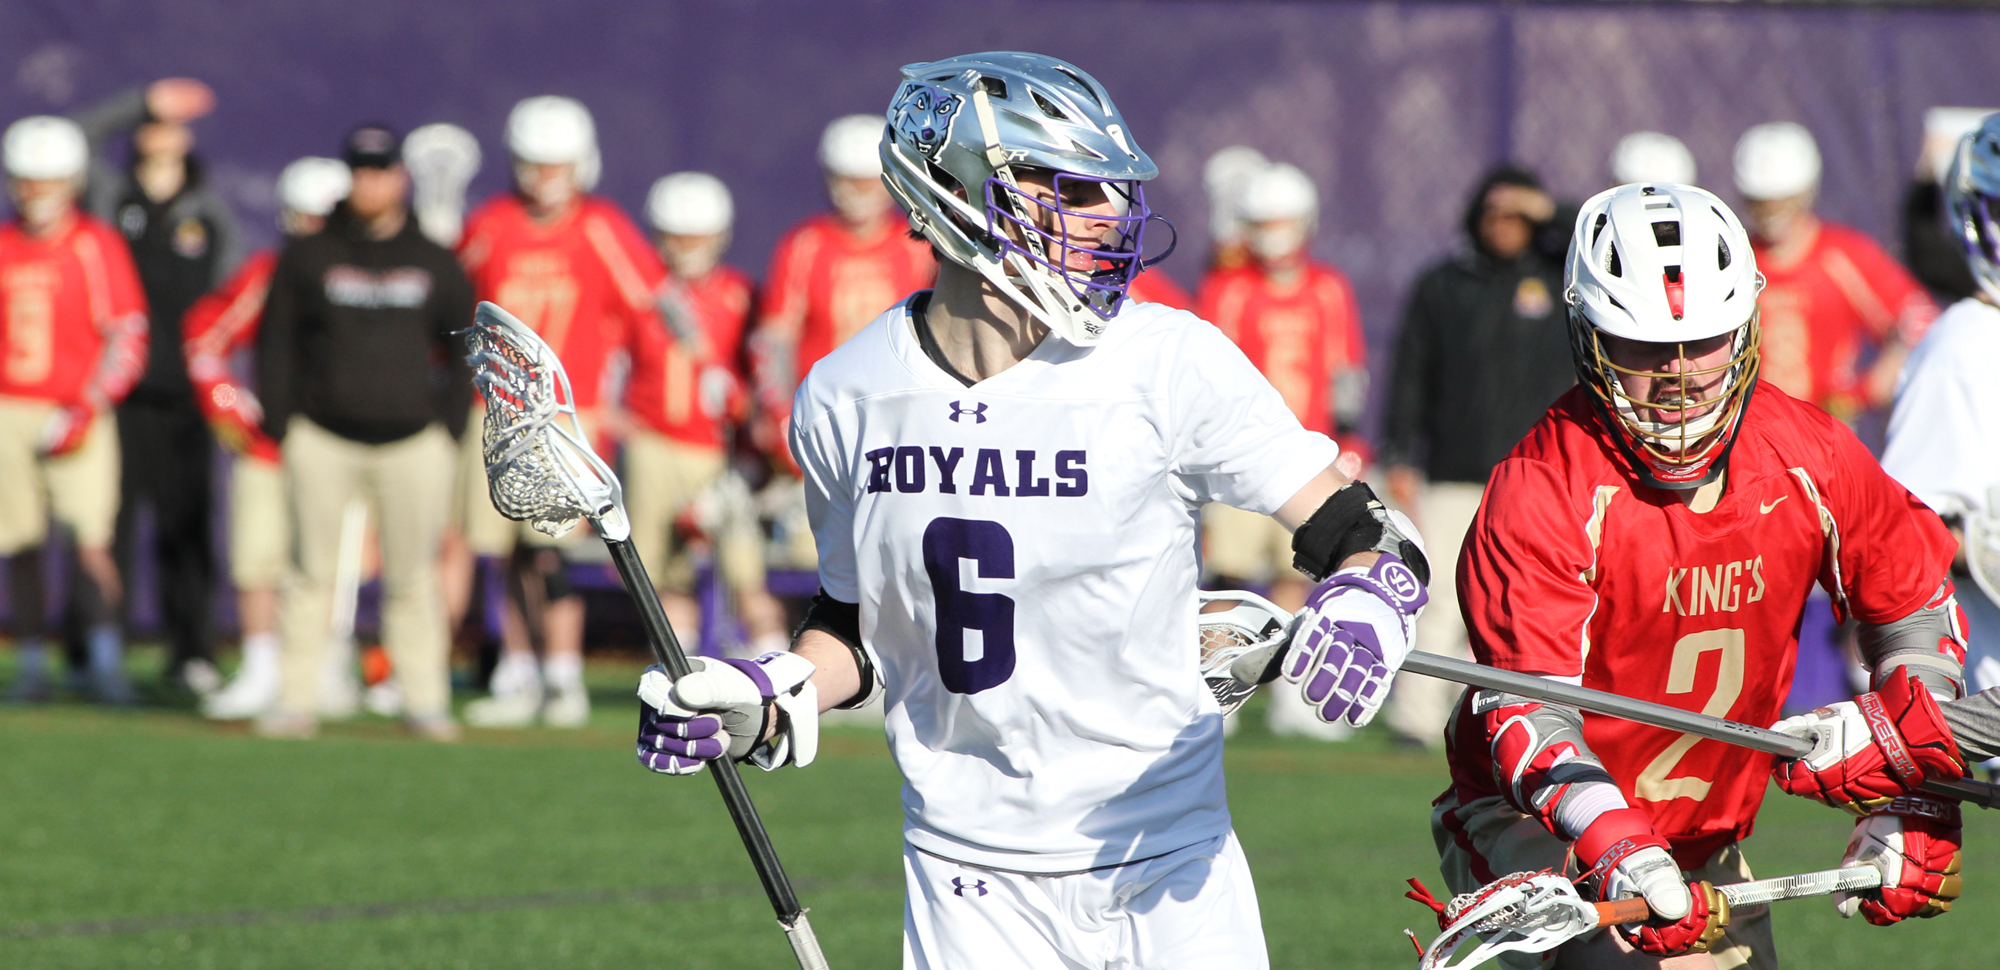 Junior Connor Kirkwood became just the 23rd player in Scranton history to reach the 100-point milestone on Saturday against Stockton. © Photo by Timothy R. Dougherty / doubleeaglephotography.com